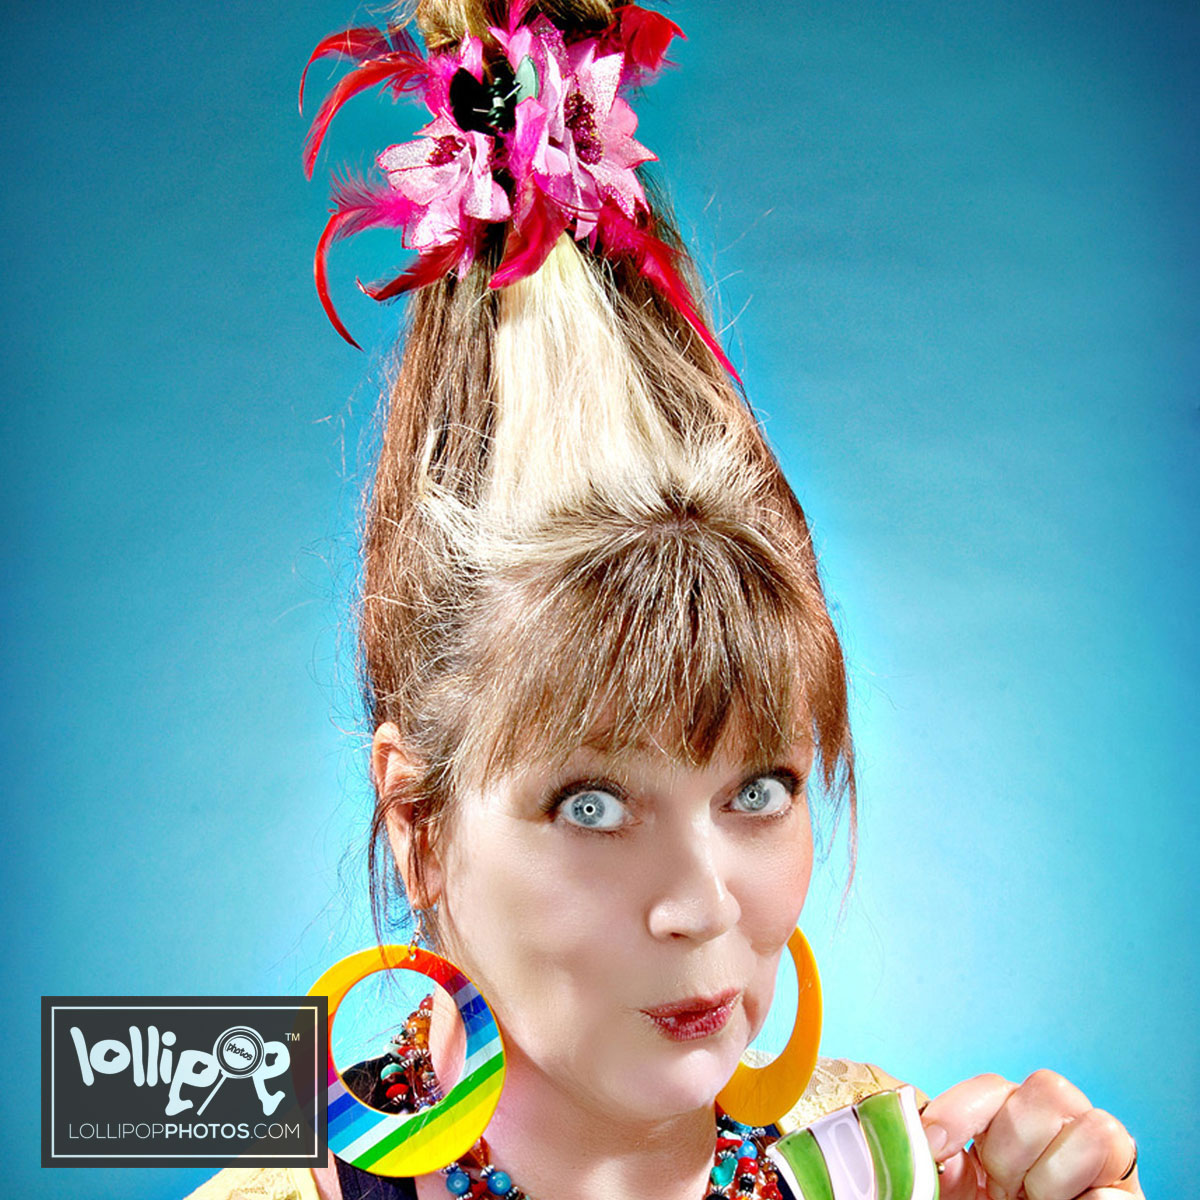 msdig-nora-canfield-lollipop-photos-306